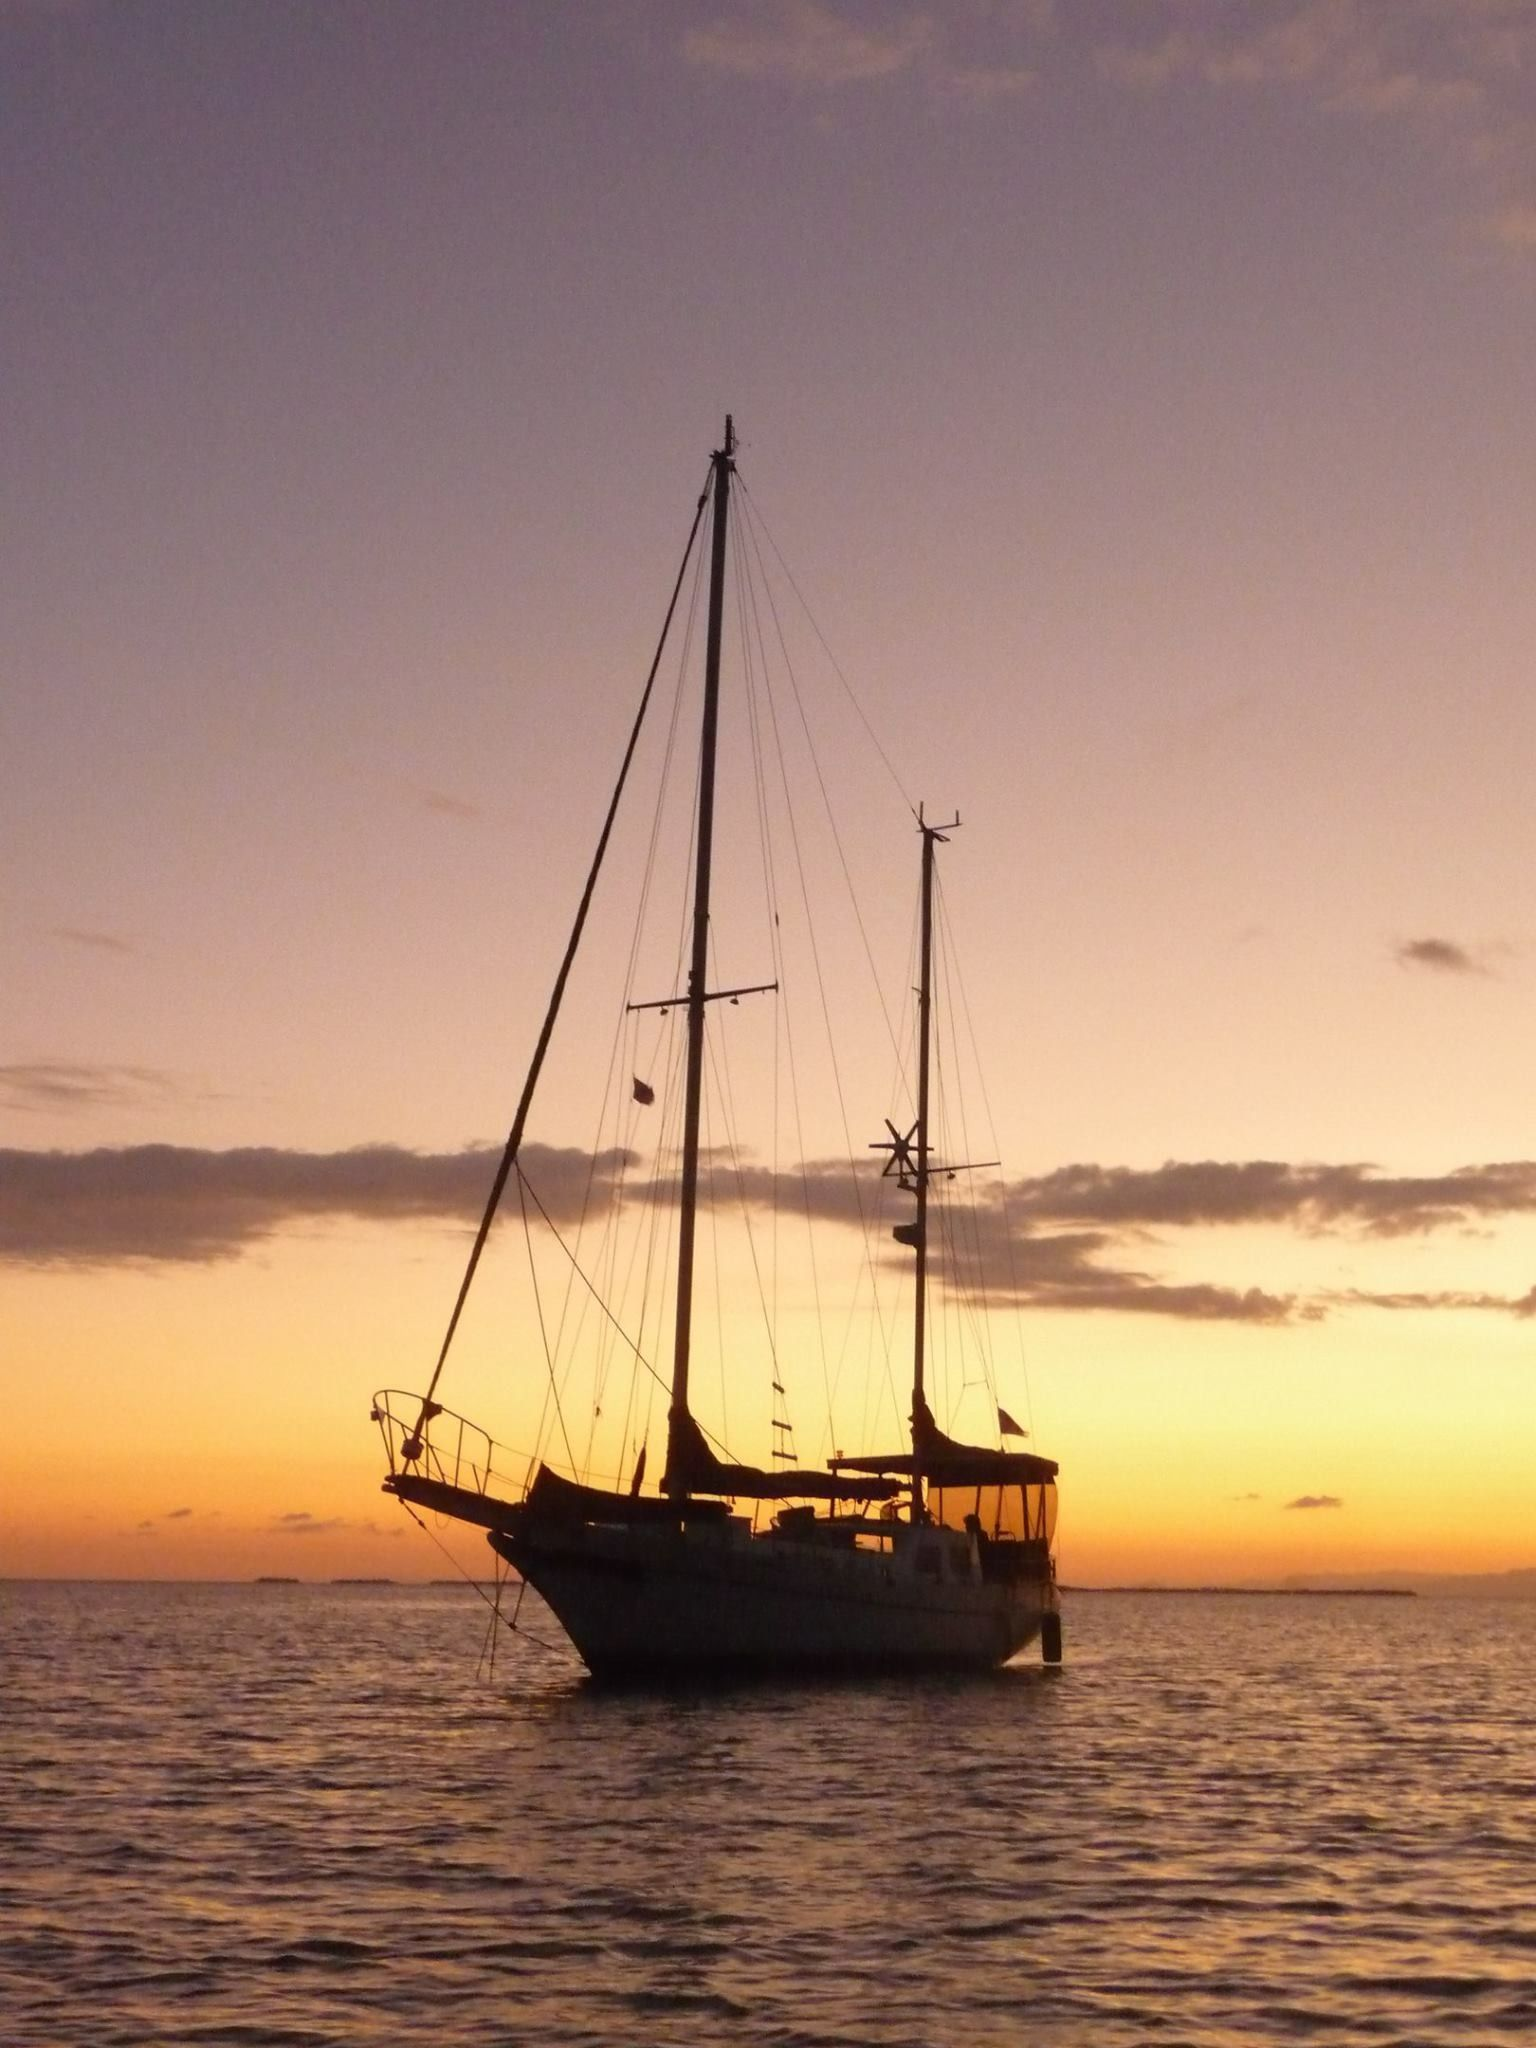 Pin by Speedworx on Cool stuff Sailing ships, Sailing, Boat